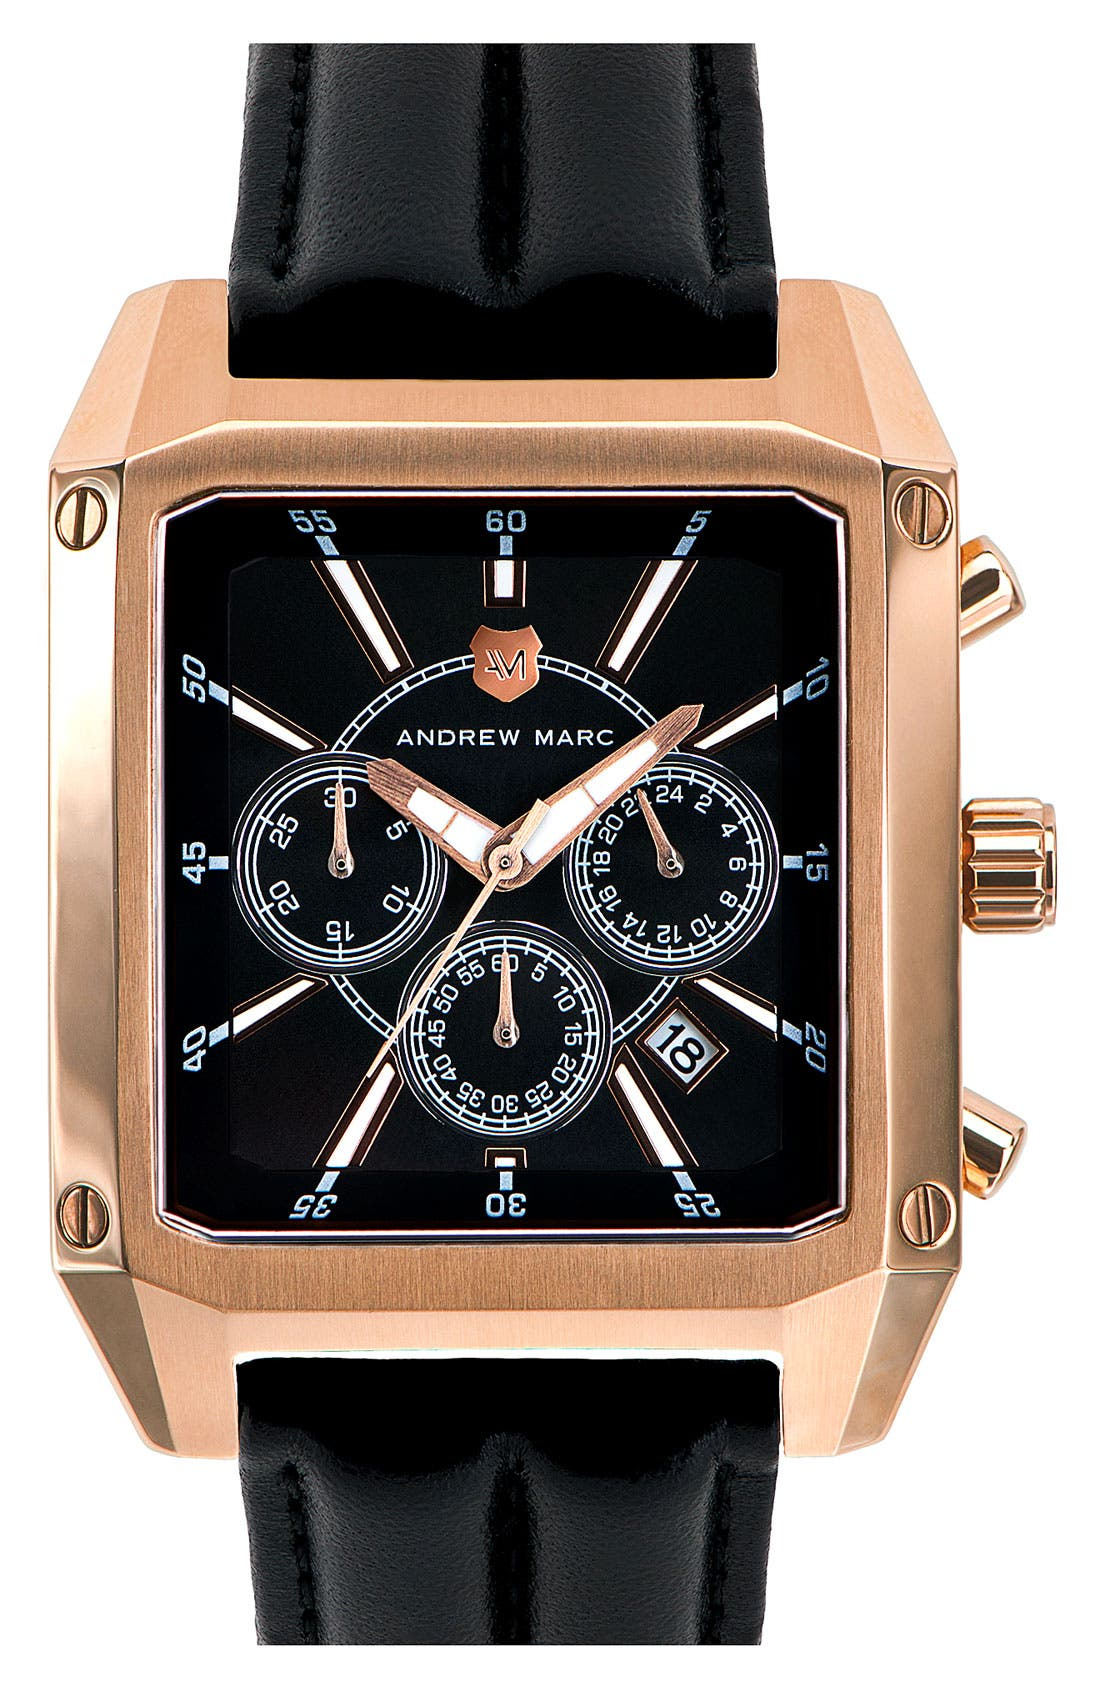 Main Image - Andrew Marc Watches 'Club Patrol' Chronograph Leather Strap Watch